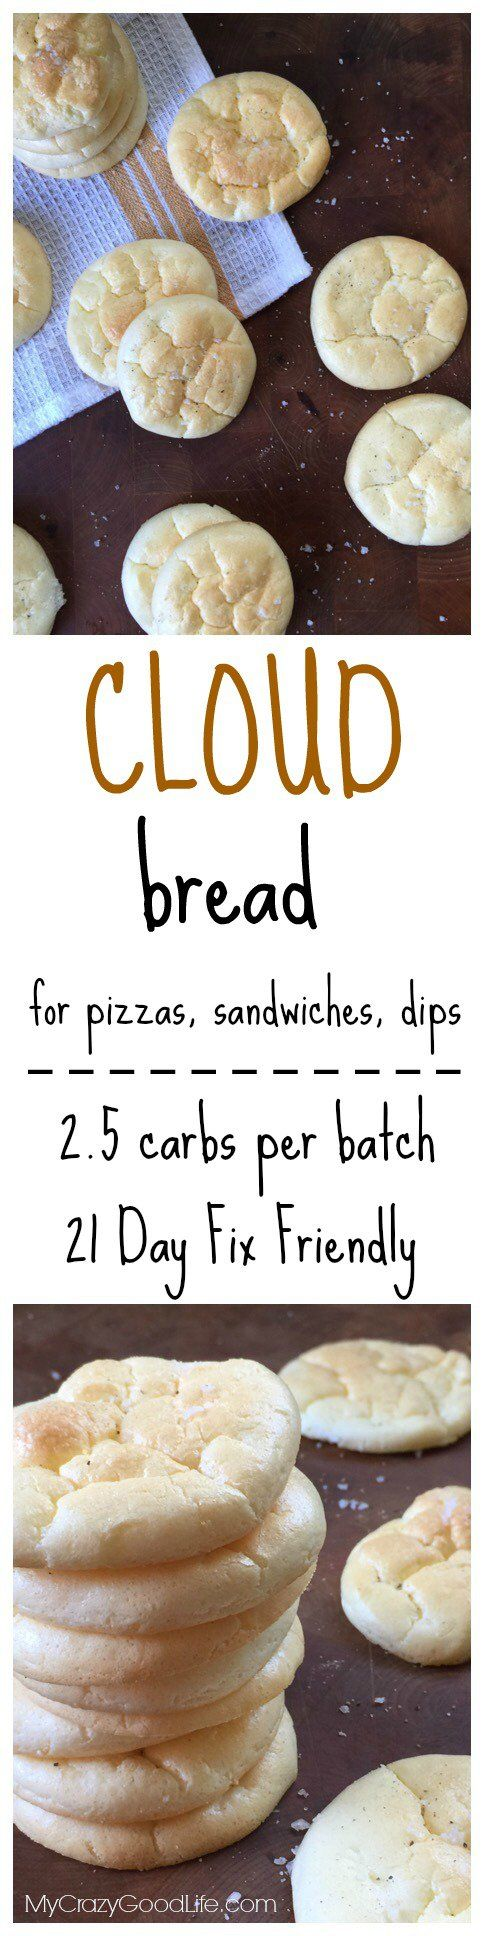 This low carb Cloud Bread has just 2.5 carbs per batchthats about 15 cracker-sized pieces. Its great for those on a low carb diet,